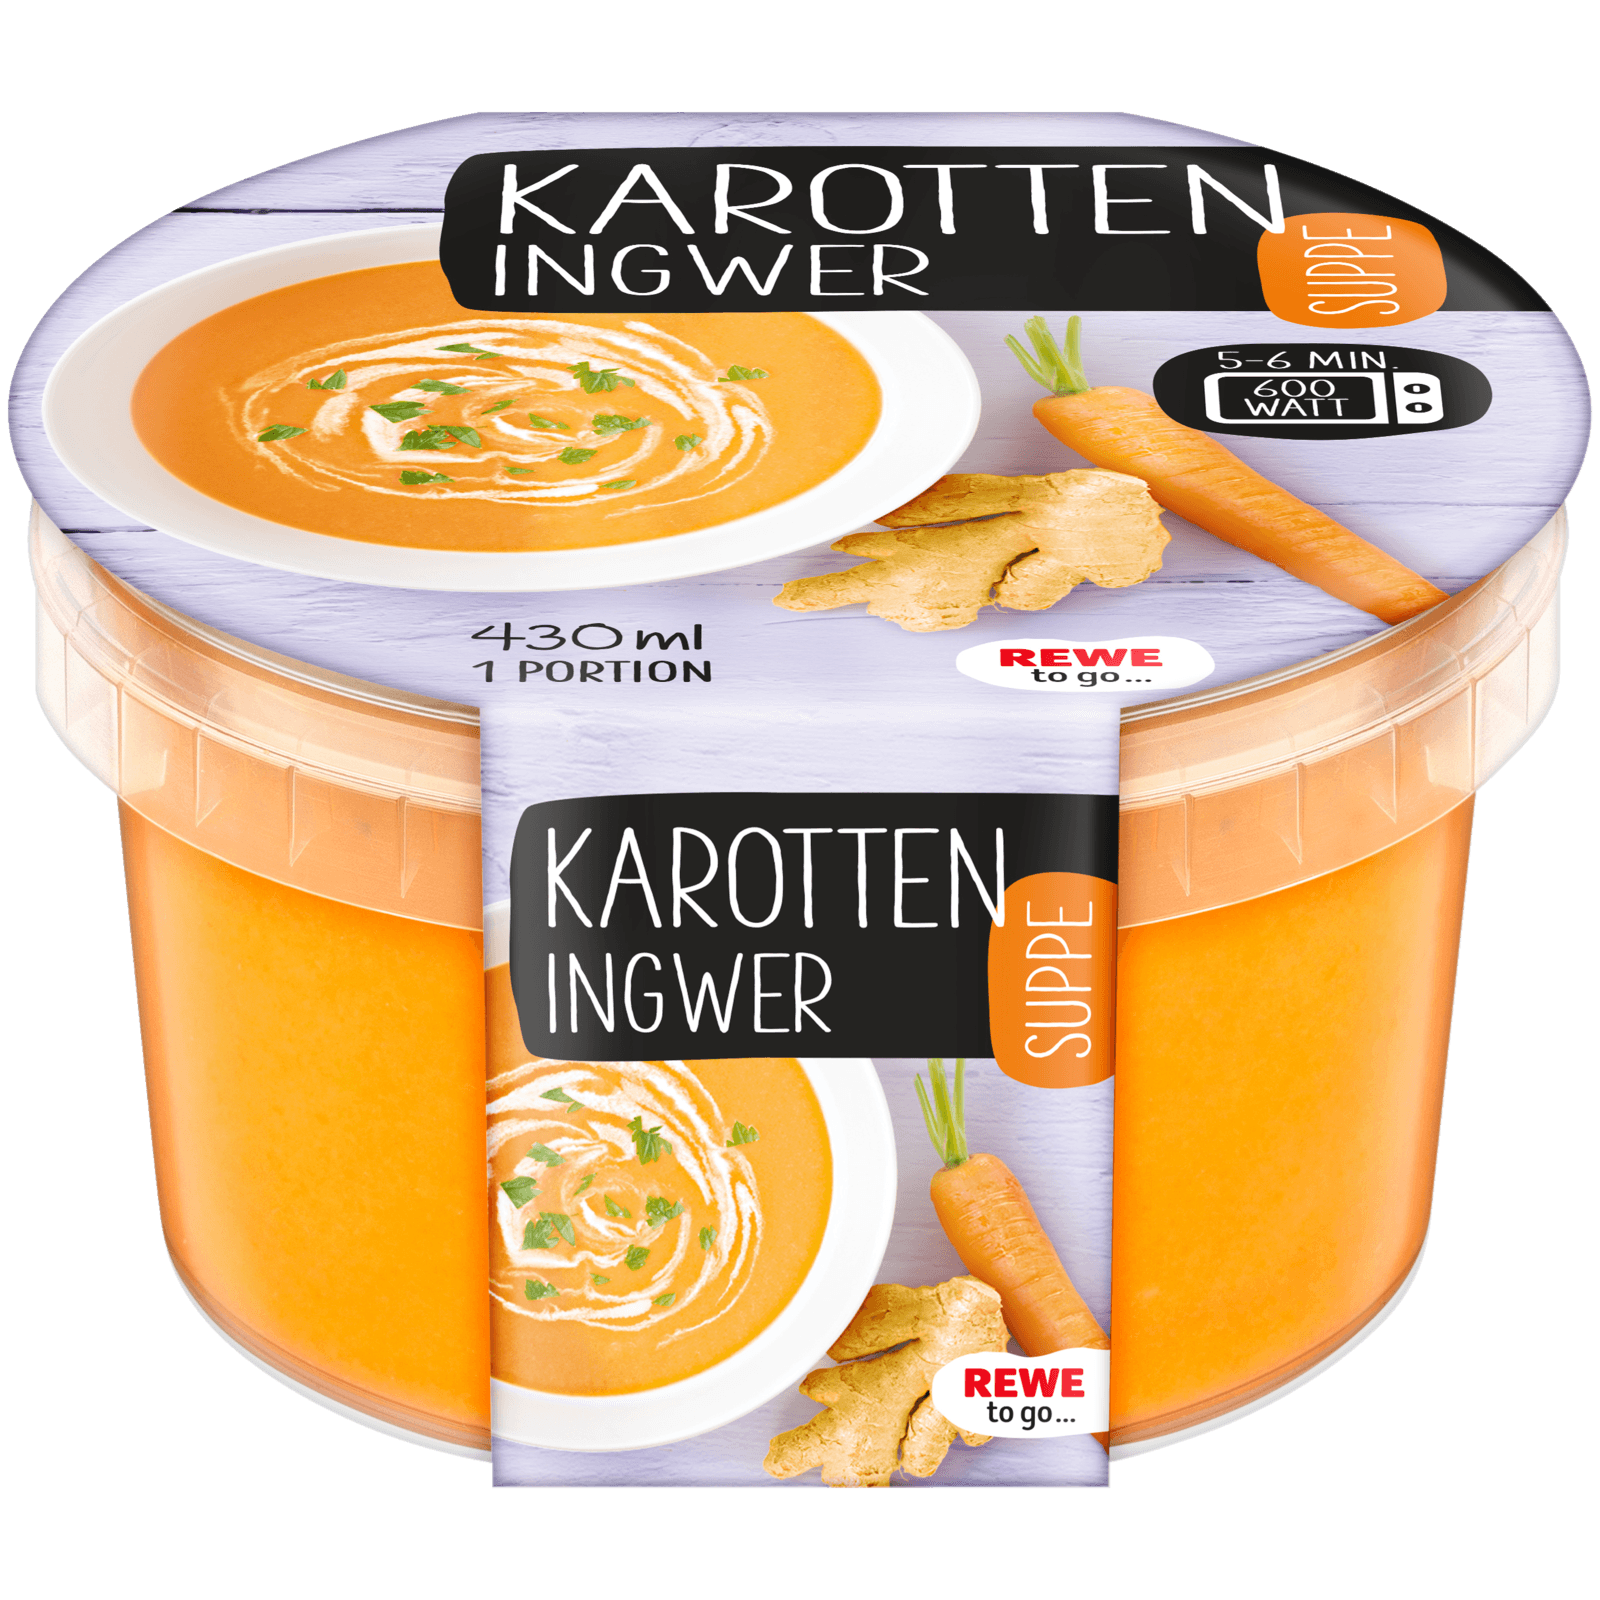 REWE to go Karotten-Ingwer-Suppe 430ml